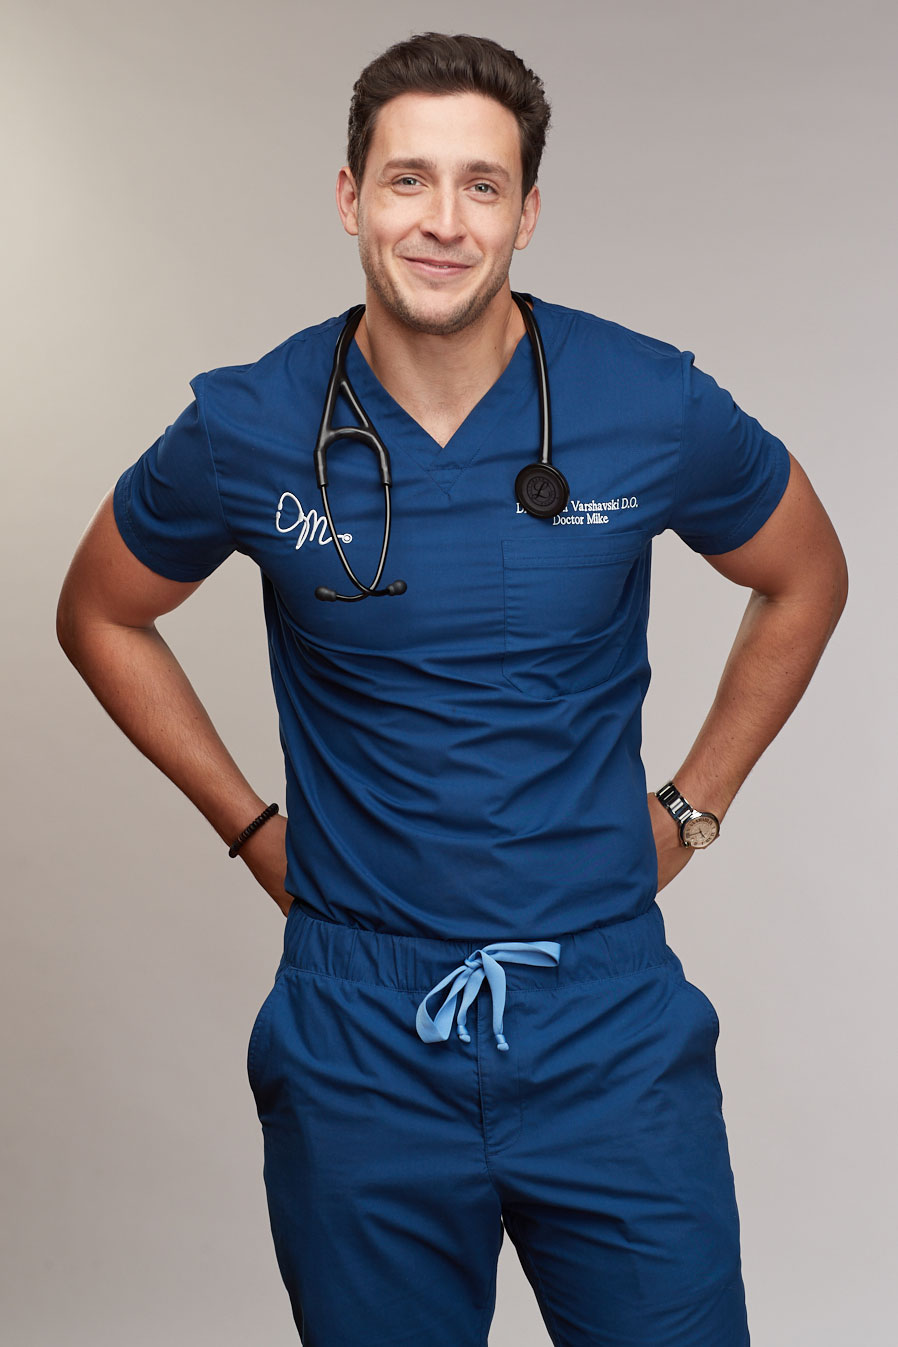 Mikhail Doctor Mike Varshavski DO  Doctors That DO